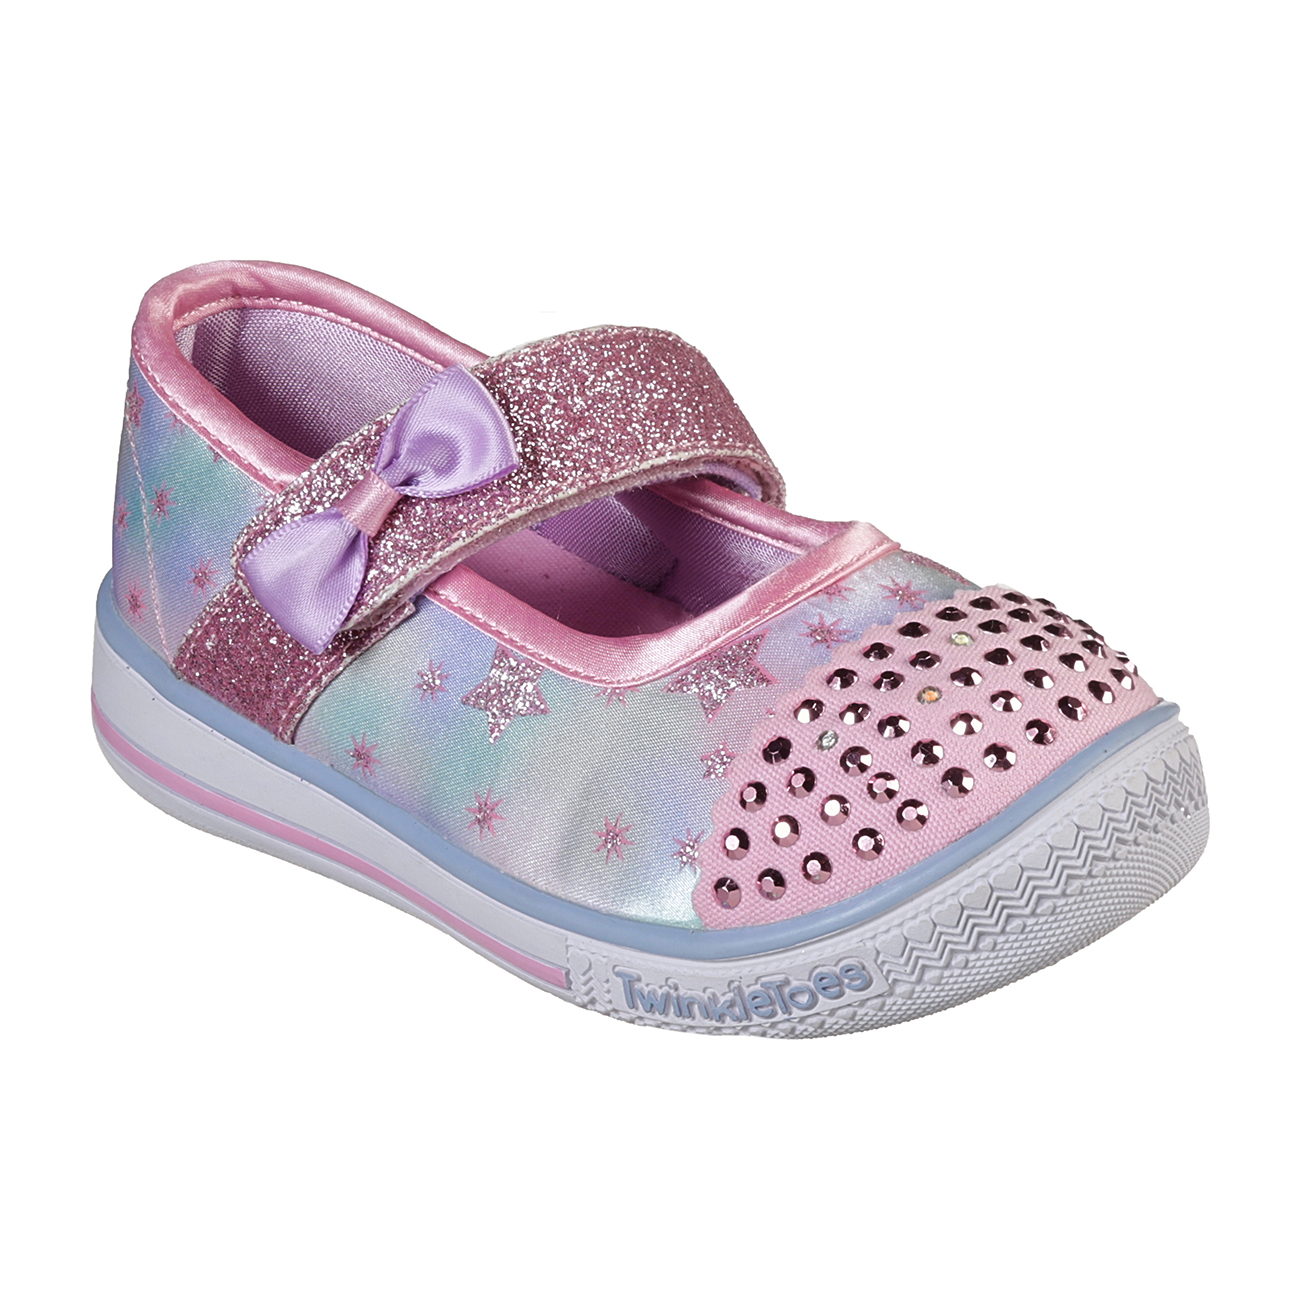 Kids Girls Skechers Twinkle Toe Twinkle Plat Starry Spark